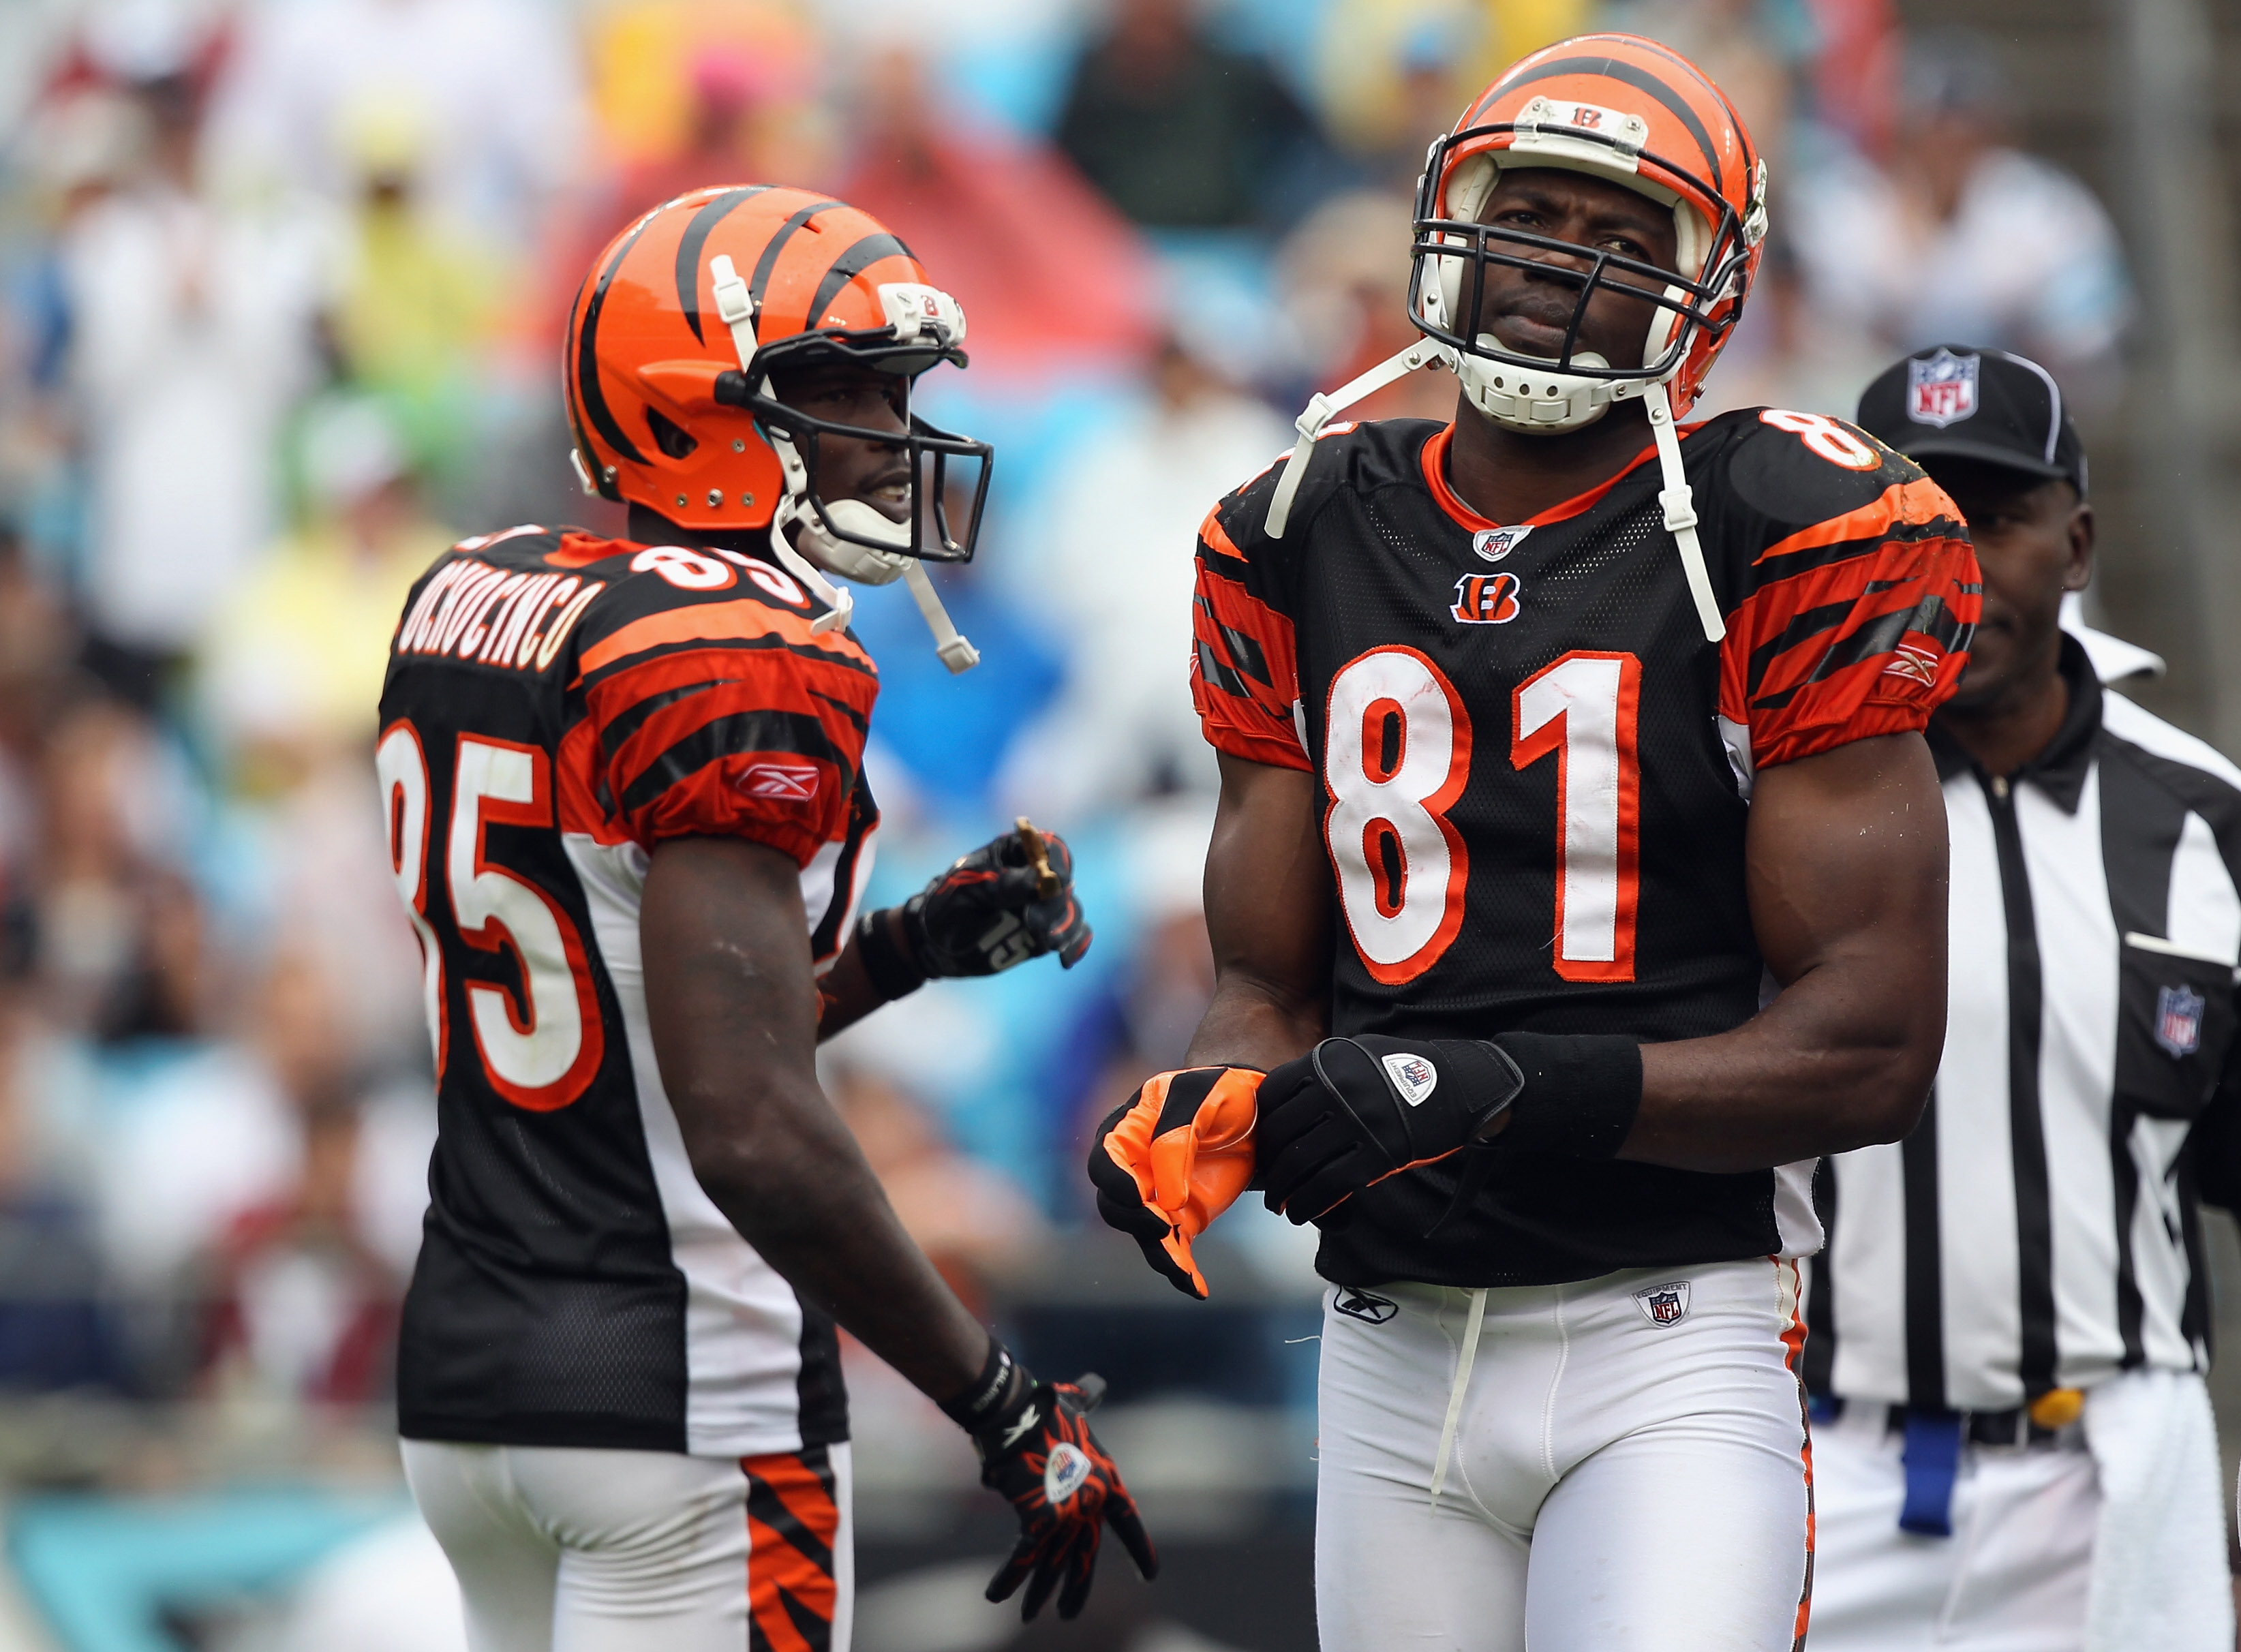 CHARLOTTE, NC - SEPTEMBER 26:  Chad Ochocinco #85 and teammate Terrell Owens #81 of the Cincinnati Bengals wait for a play against the Carolina Panthers during their game at Bank of America Stadium on September 26, 2010 in Charlotte, North Carolina.  (Pho